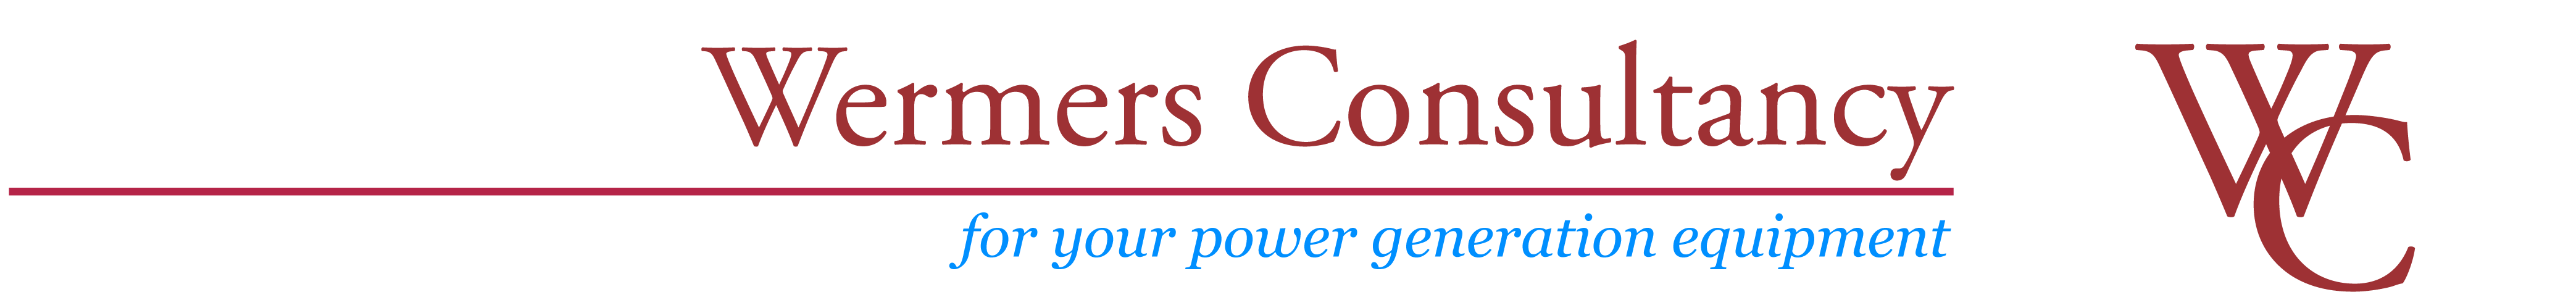 Wermers Consultancy NL - For Your Power Generation Equipment